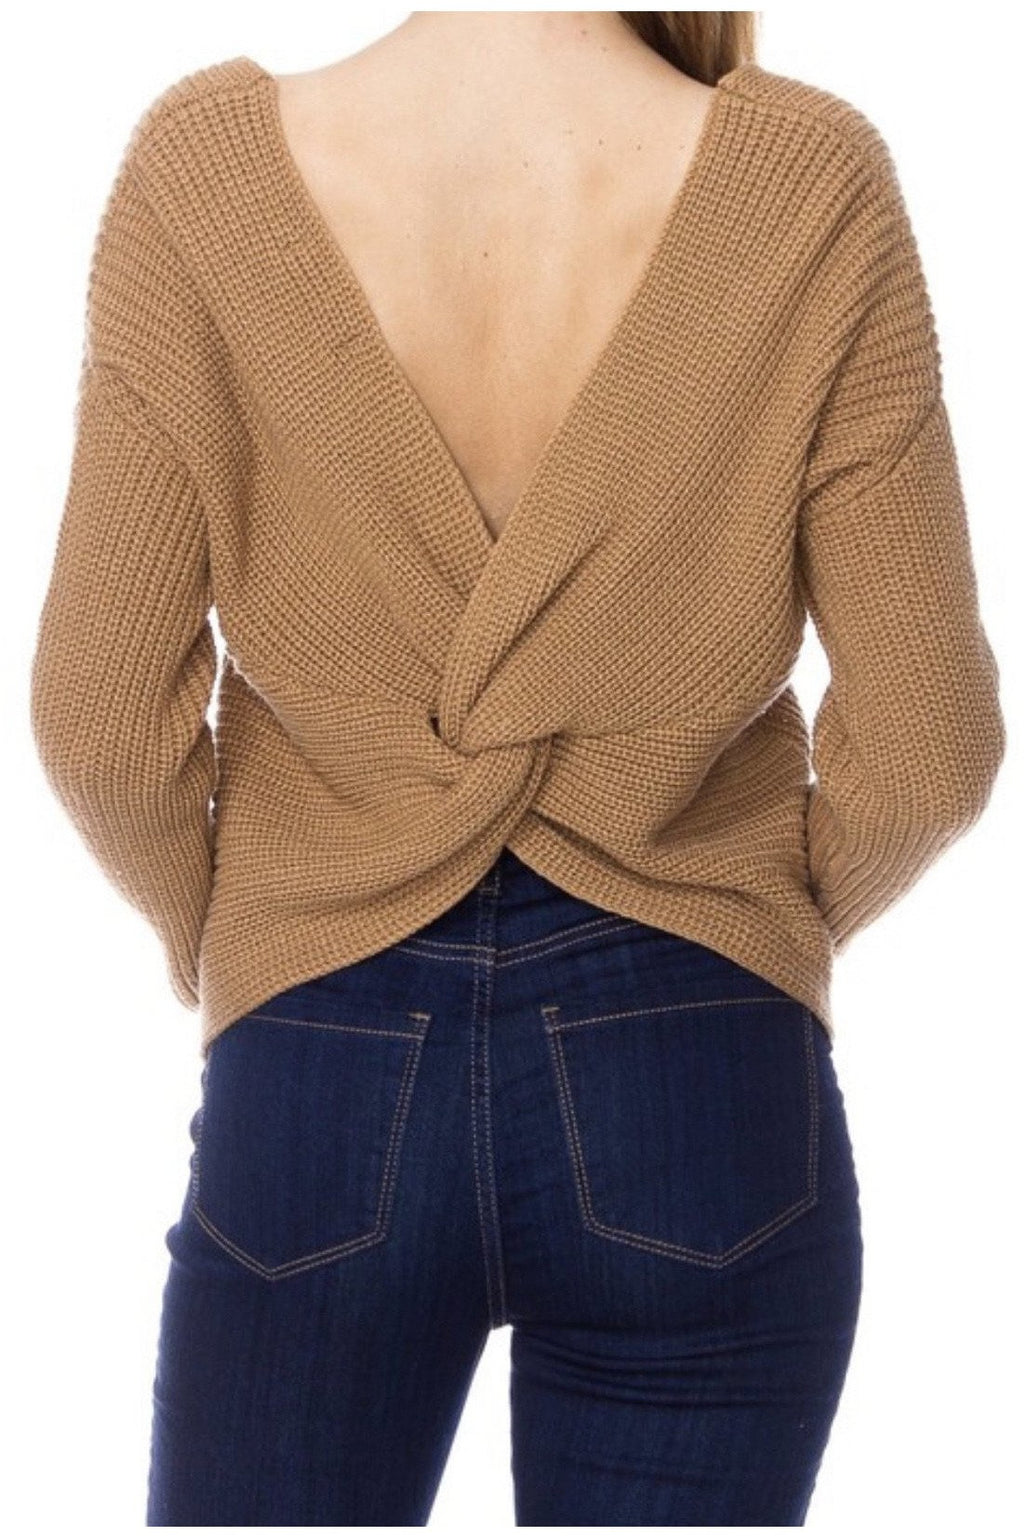 Kendra Twist-back Sweater Camel